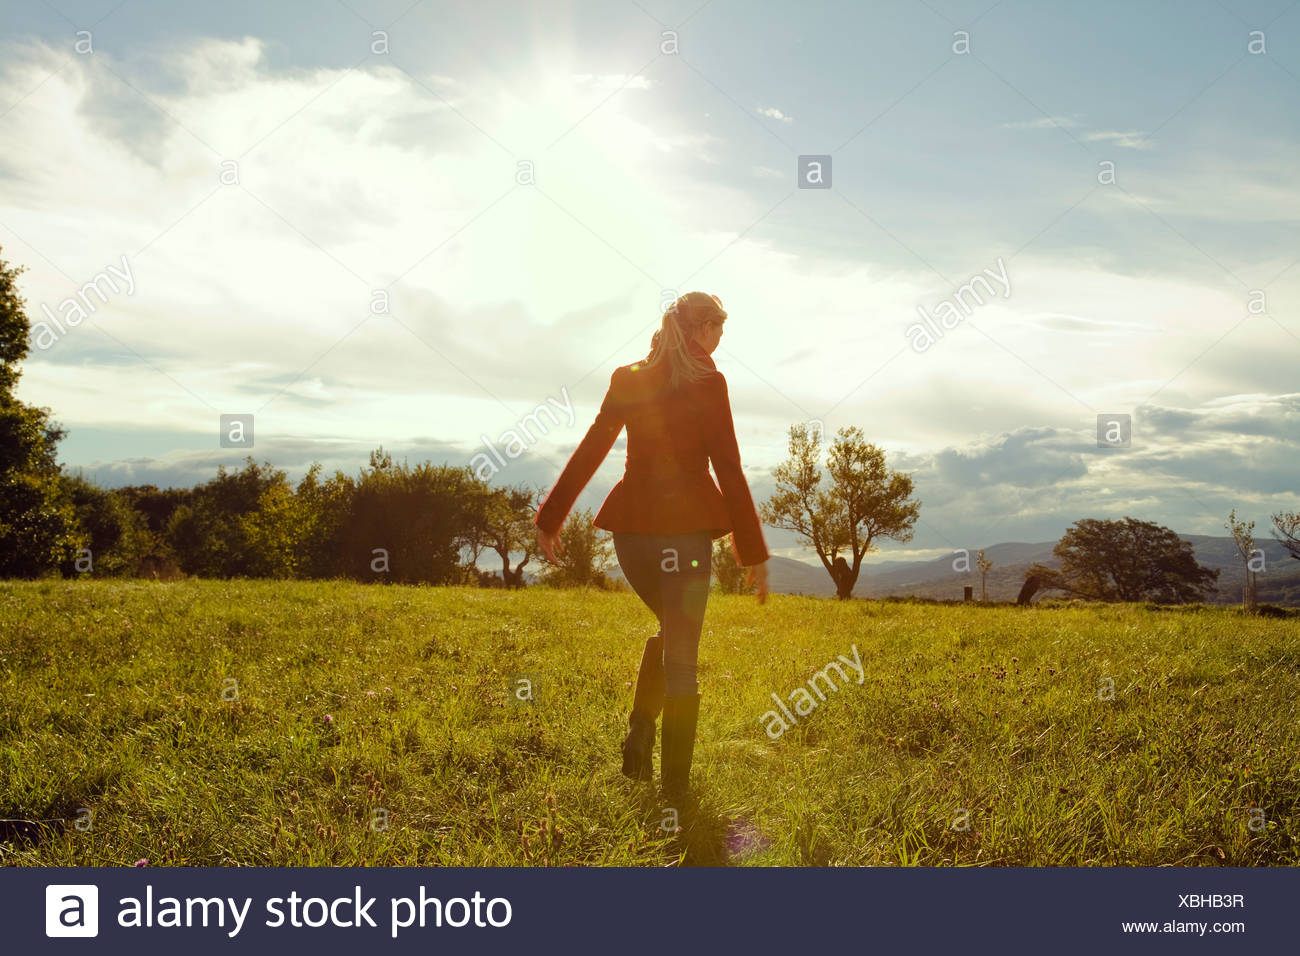 Young woman in field walking away - Stock Image